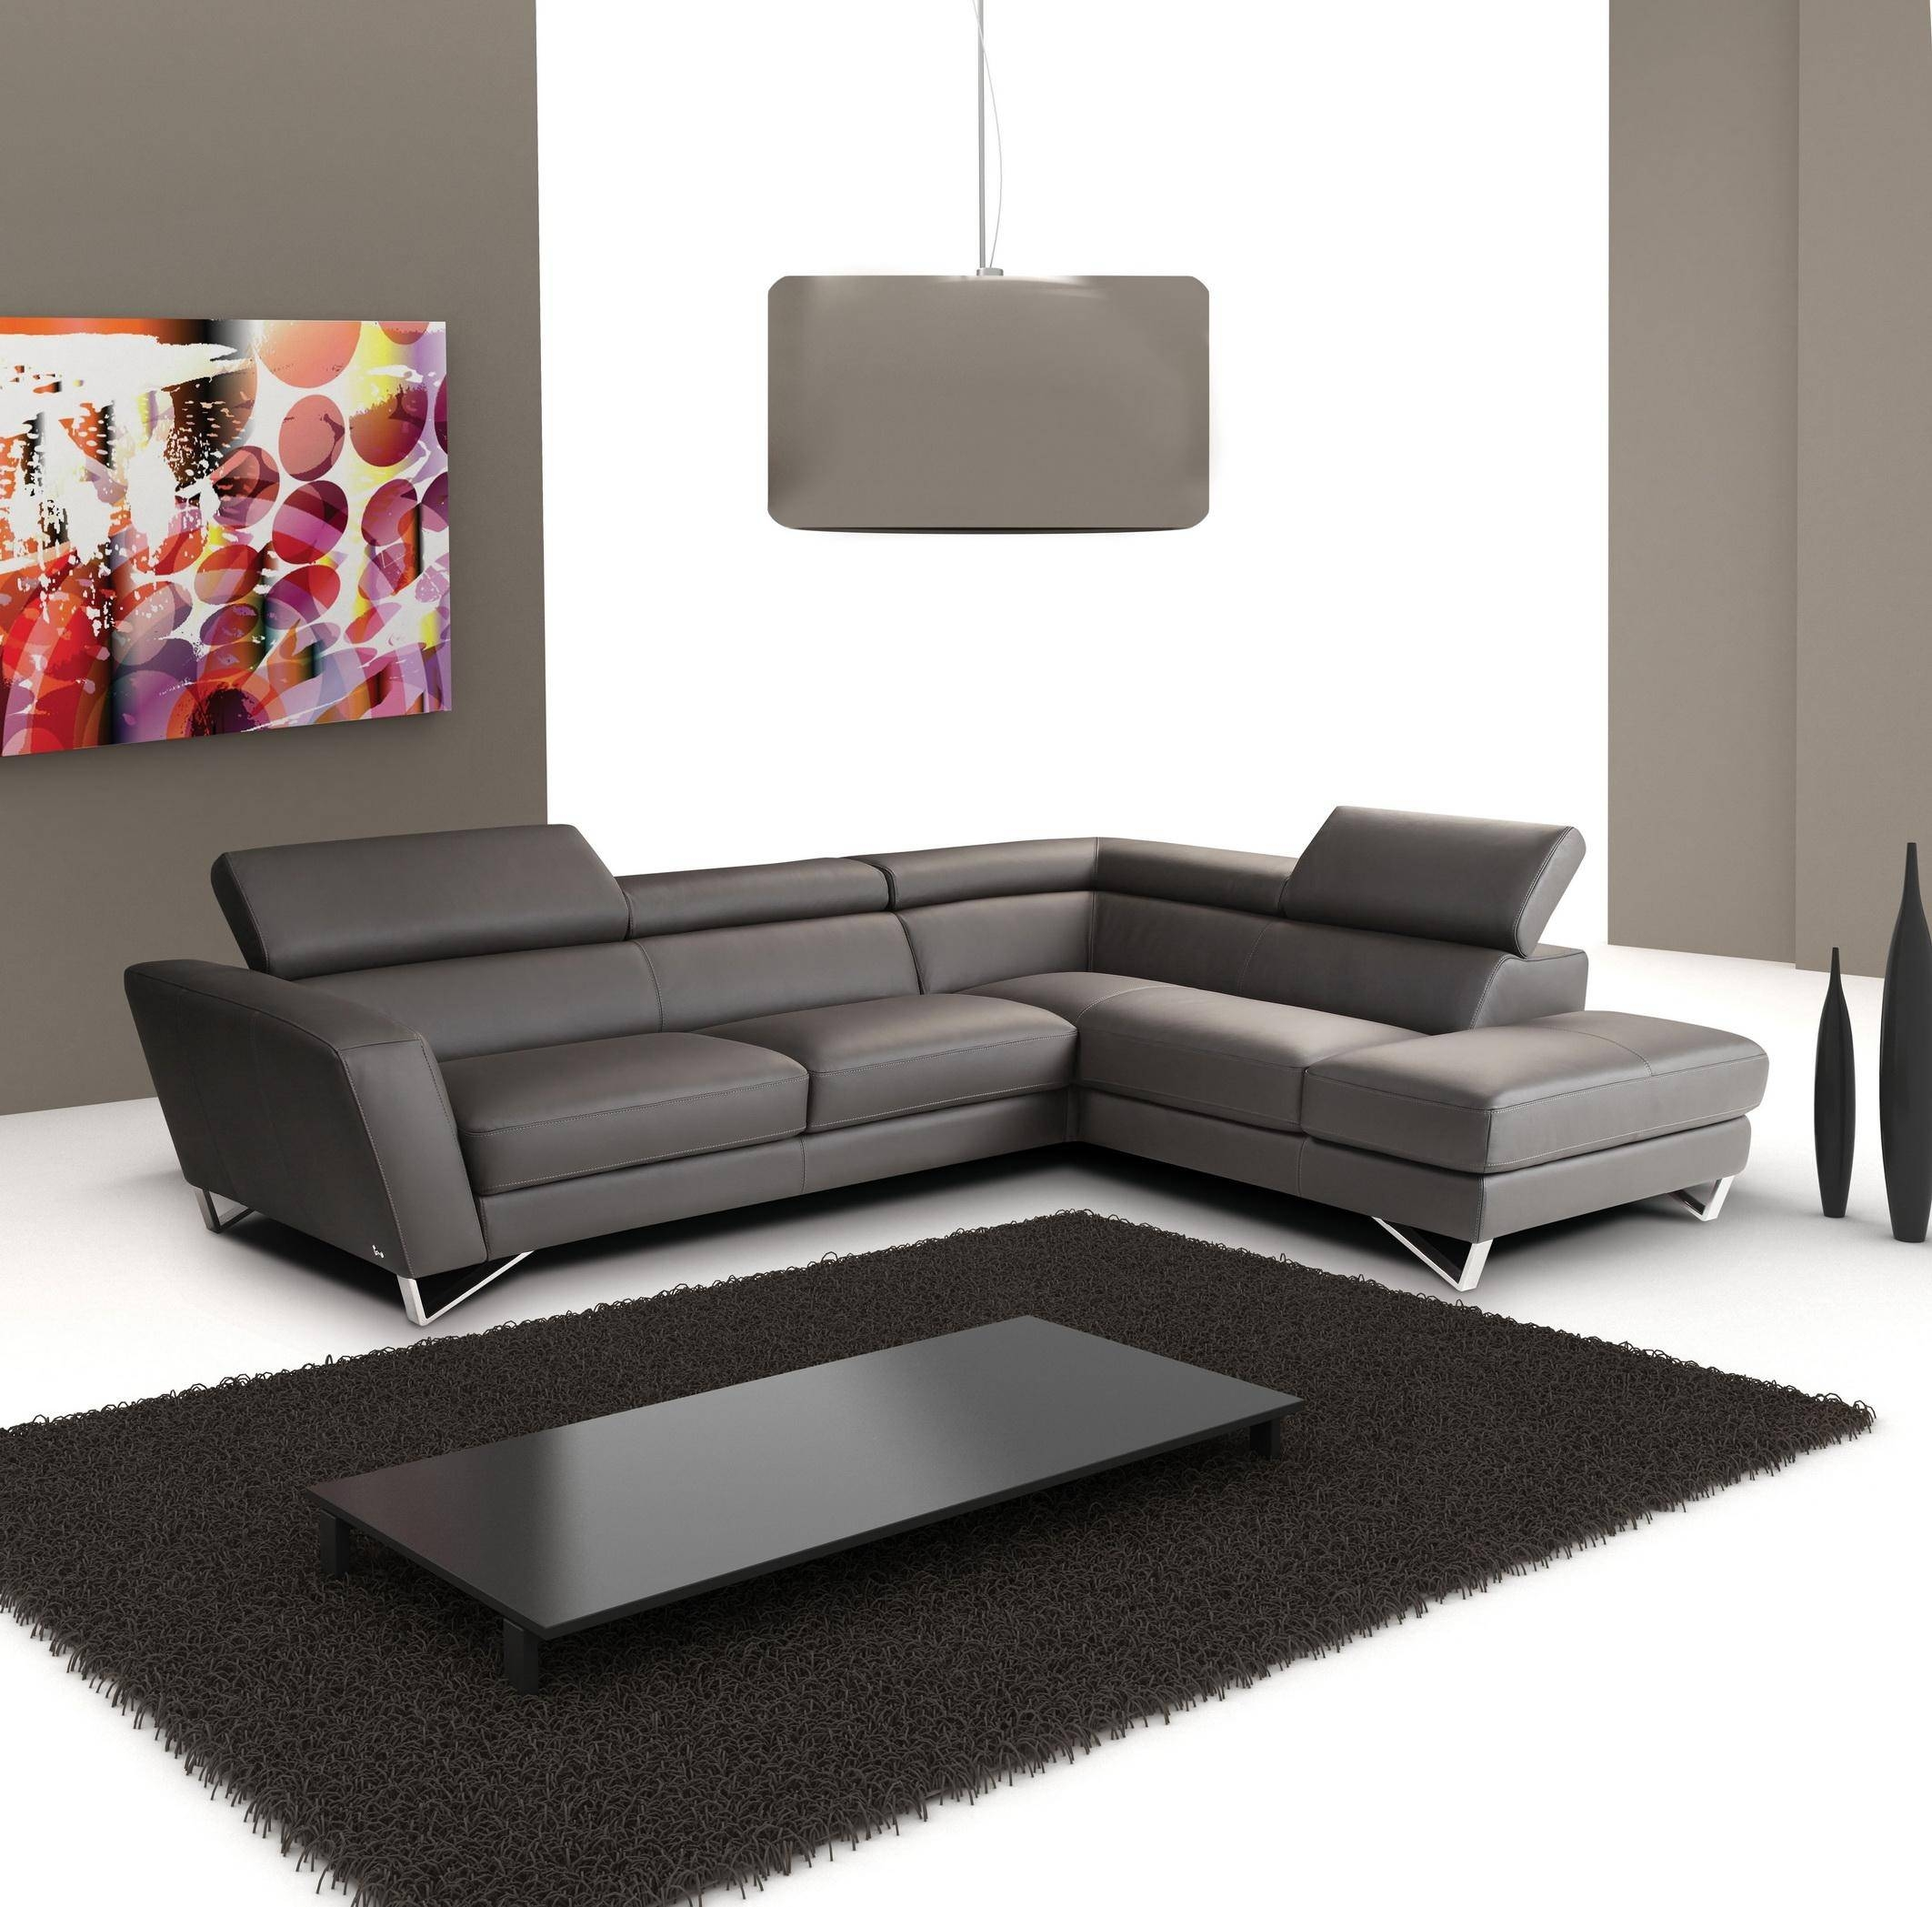 20+ Choices Of Small Scale Leather Sectional Sofas | Sofa Ideas With Regard To Small Scale Leather Sectional Sofas (View 3 of 15)